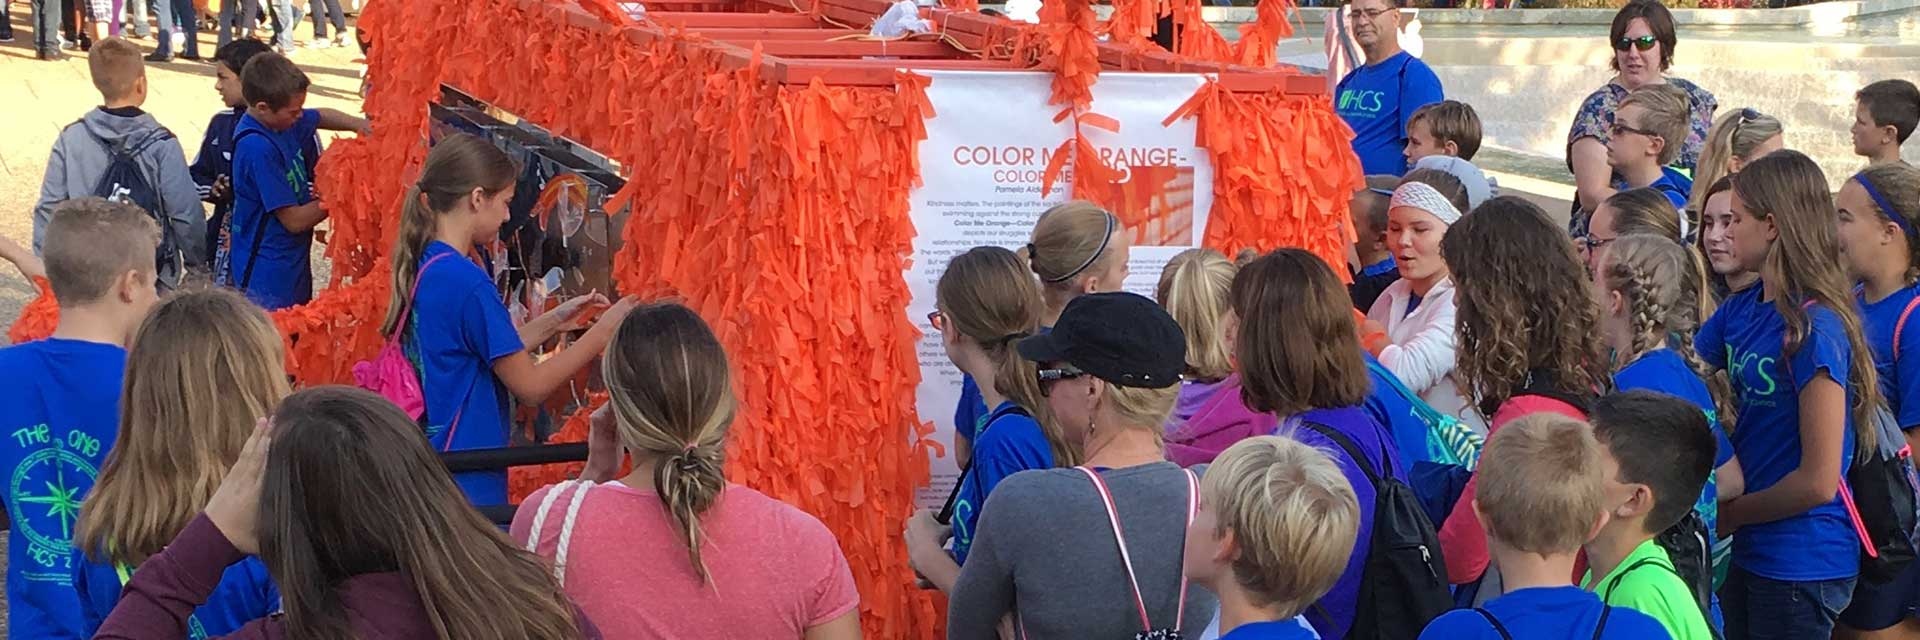 Color Me Orange—Color Me Kind at ArtPrize Eight